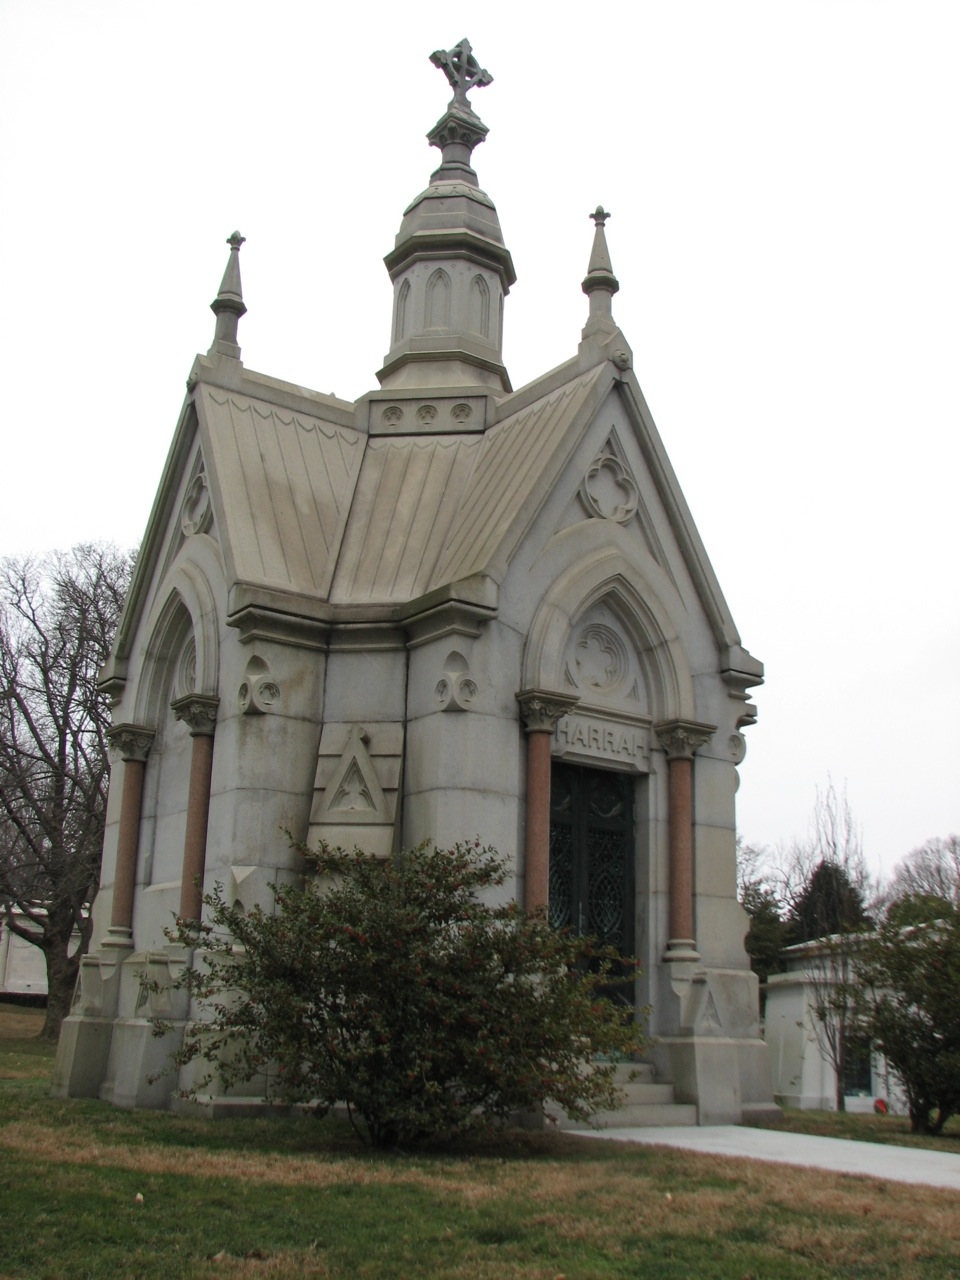 The Harrah family modeled their resting place after a Gothic chapel.